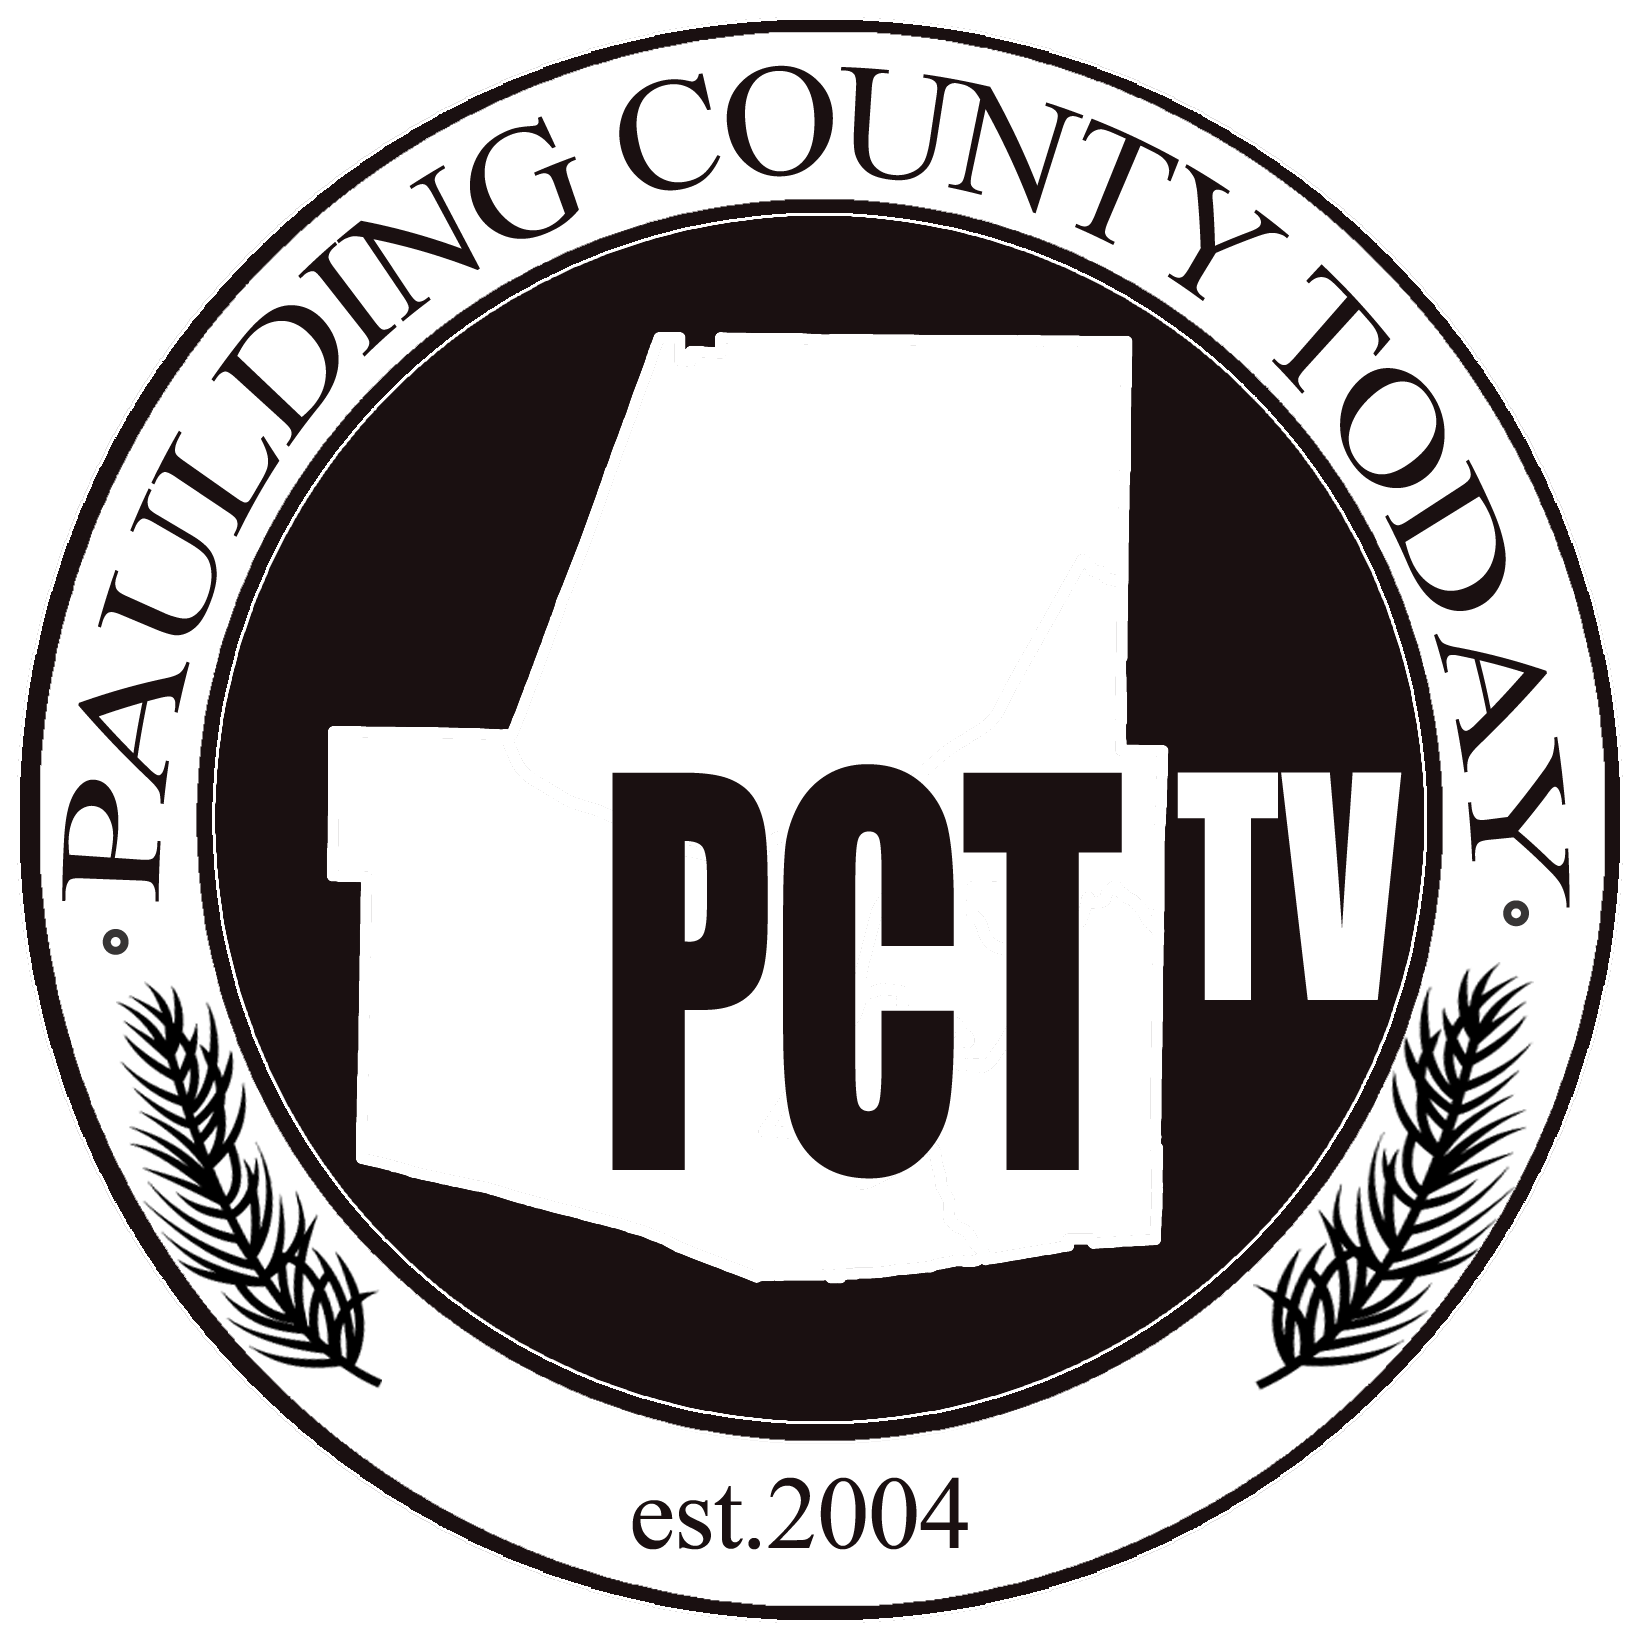 Paulding County Today Seal